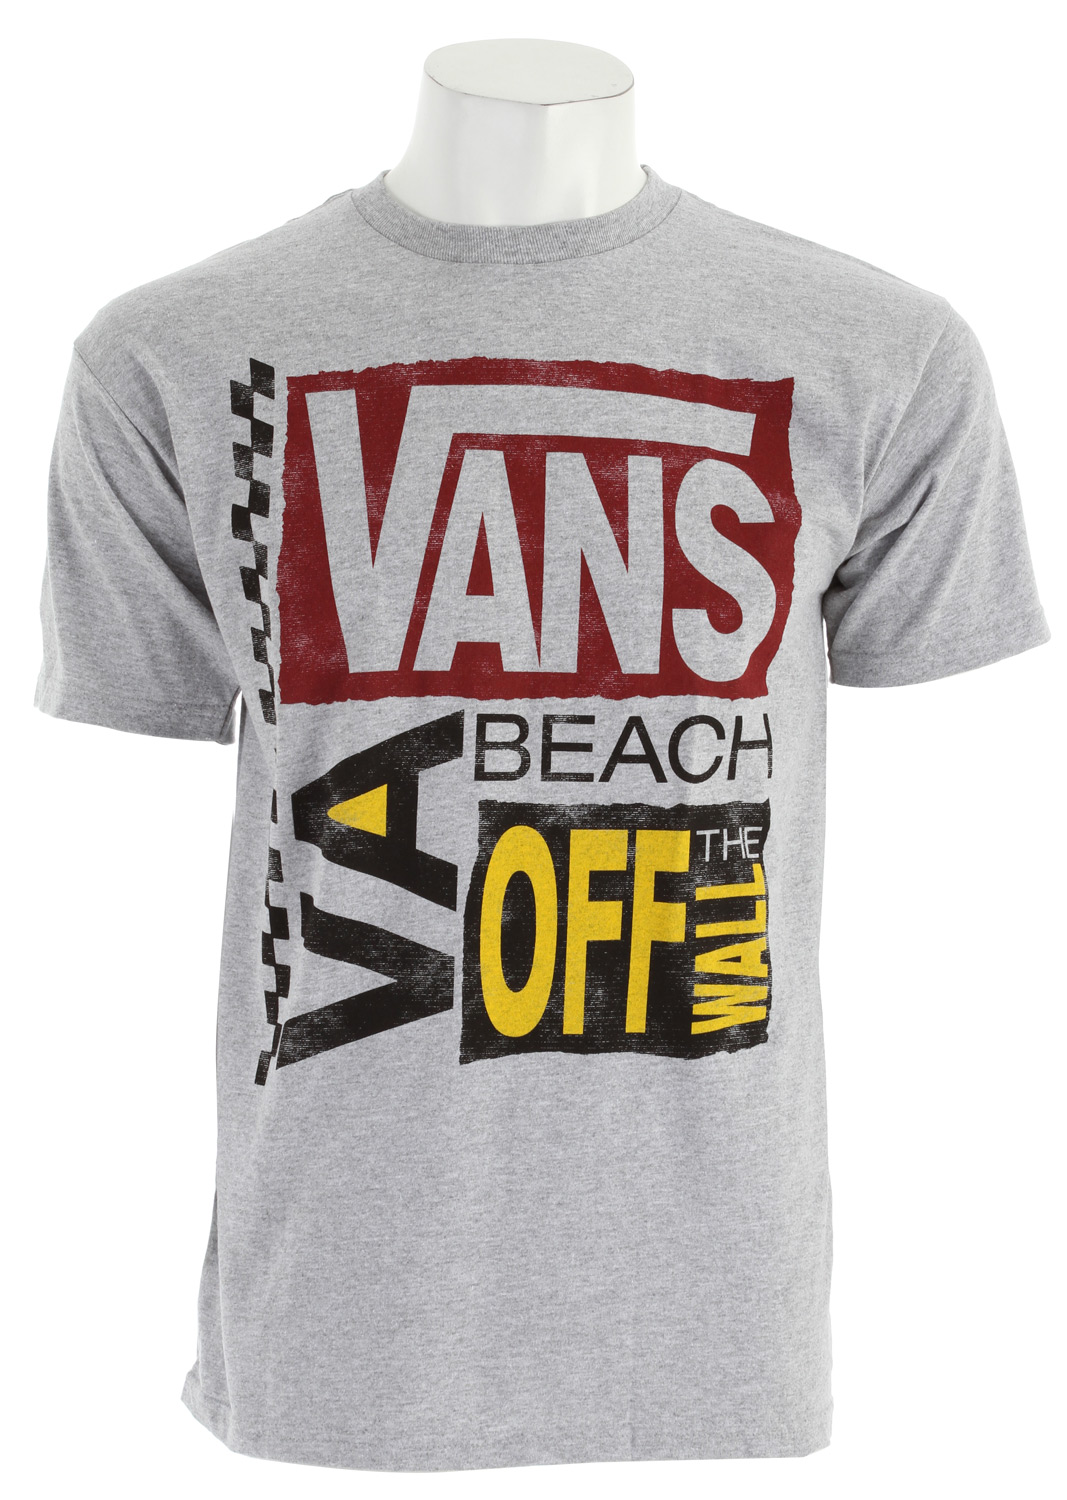 Skateboard Key Features of The Vans Futurepast VB T-Shirt: Regular Fit Crew Neck Short Sleeve 100% Cotton 30/1 Custom Fit 4.5 oz. combed ringspun cotton tee shirt Front chest screen print with water-based or softhand plastisol ink treatment Clip label on back hem - $9.95